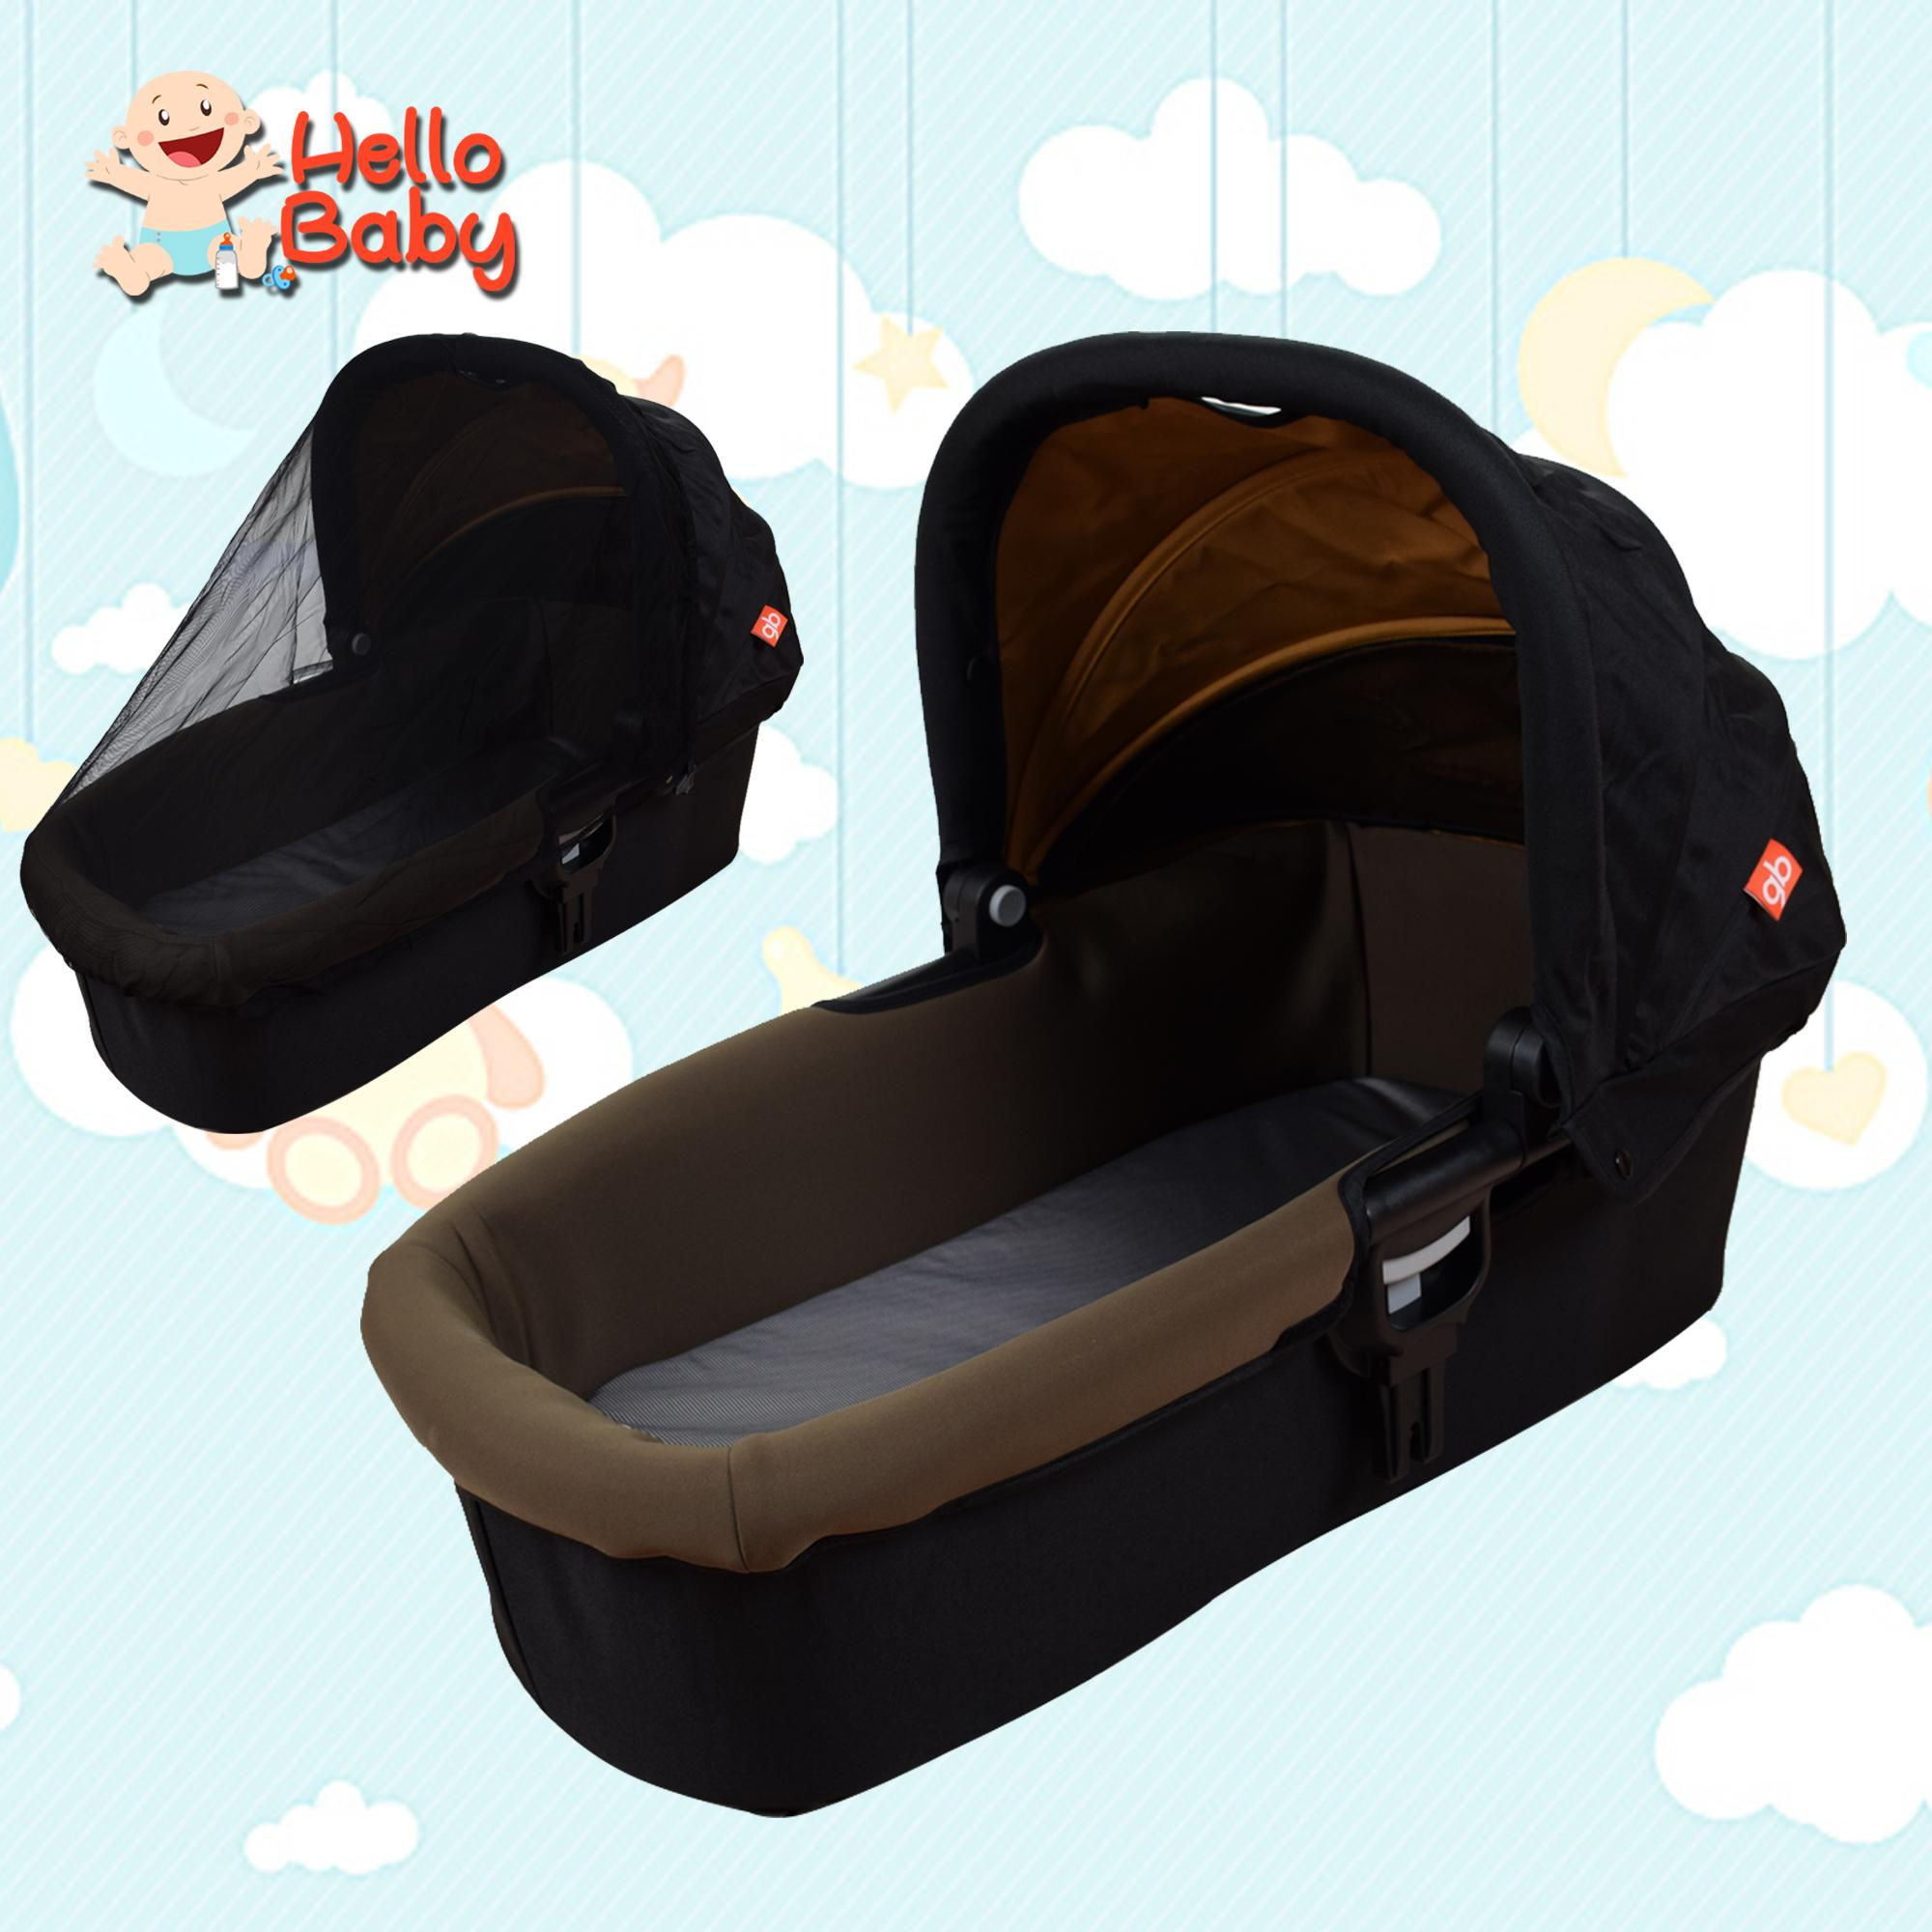 Hello Baby Gb Sl009 Baby Carrycot Moses Basket With Mosquito Net By Hello Baby.